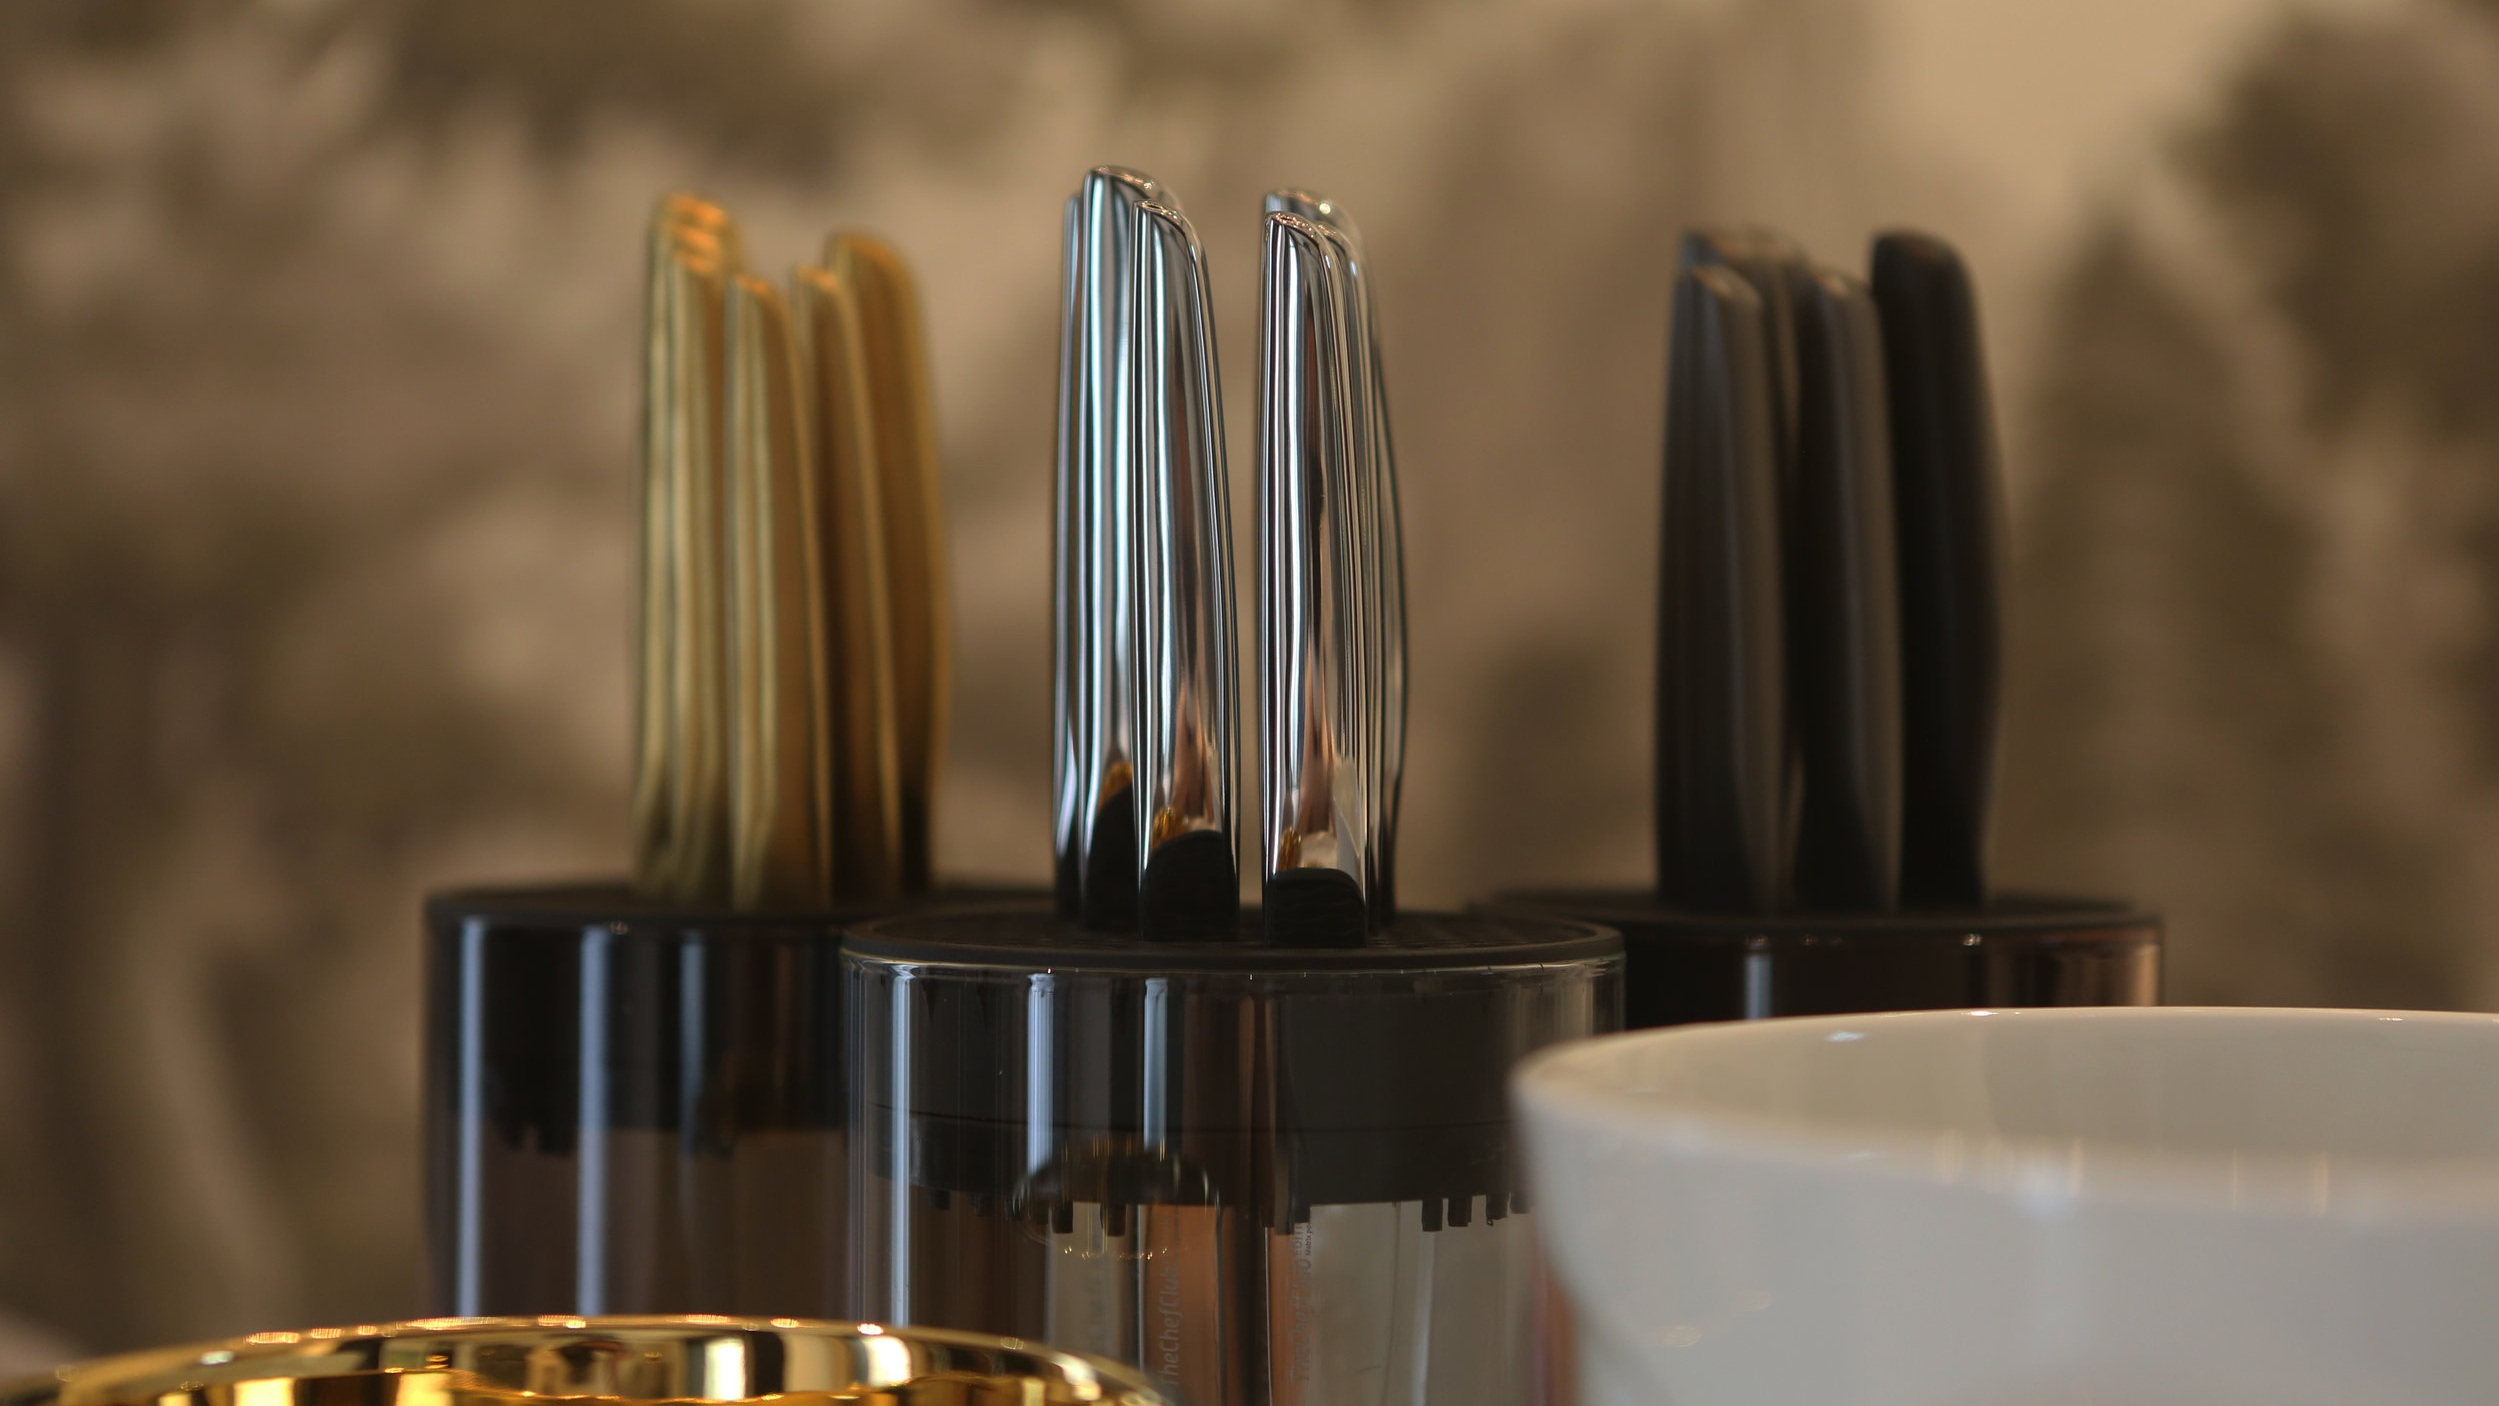 Modern & intuitive - Adding creativity, fun & style to your cooking and kitchen.